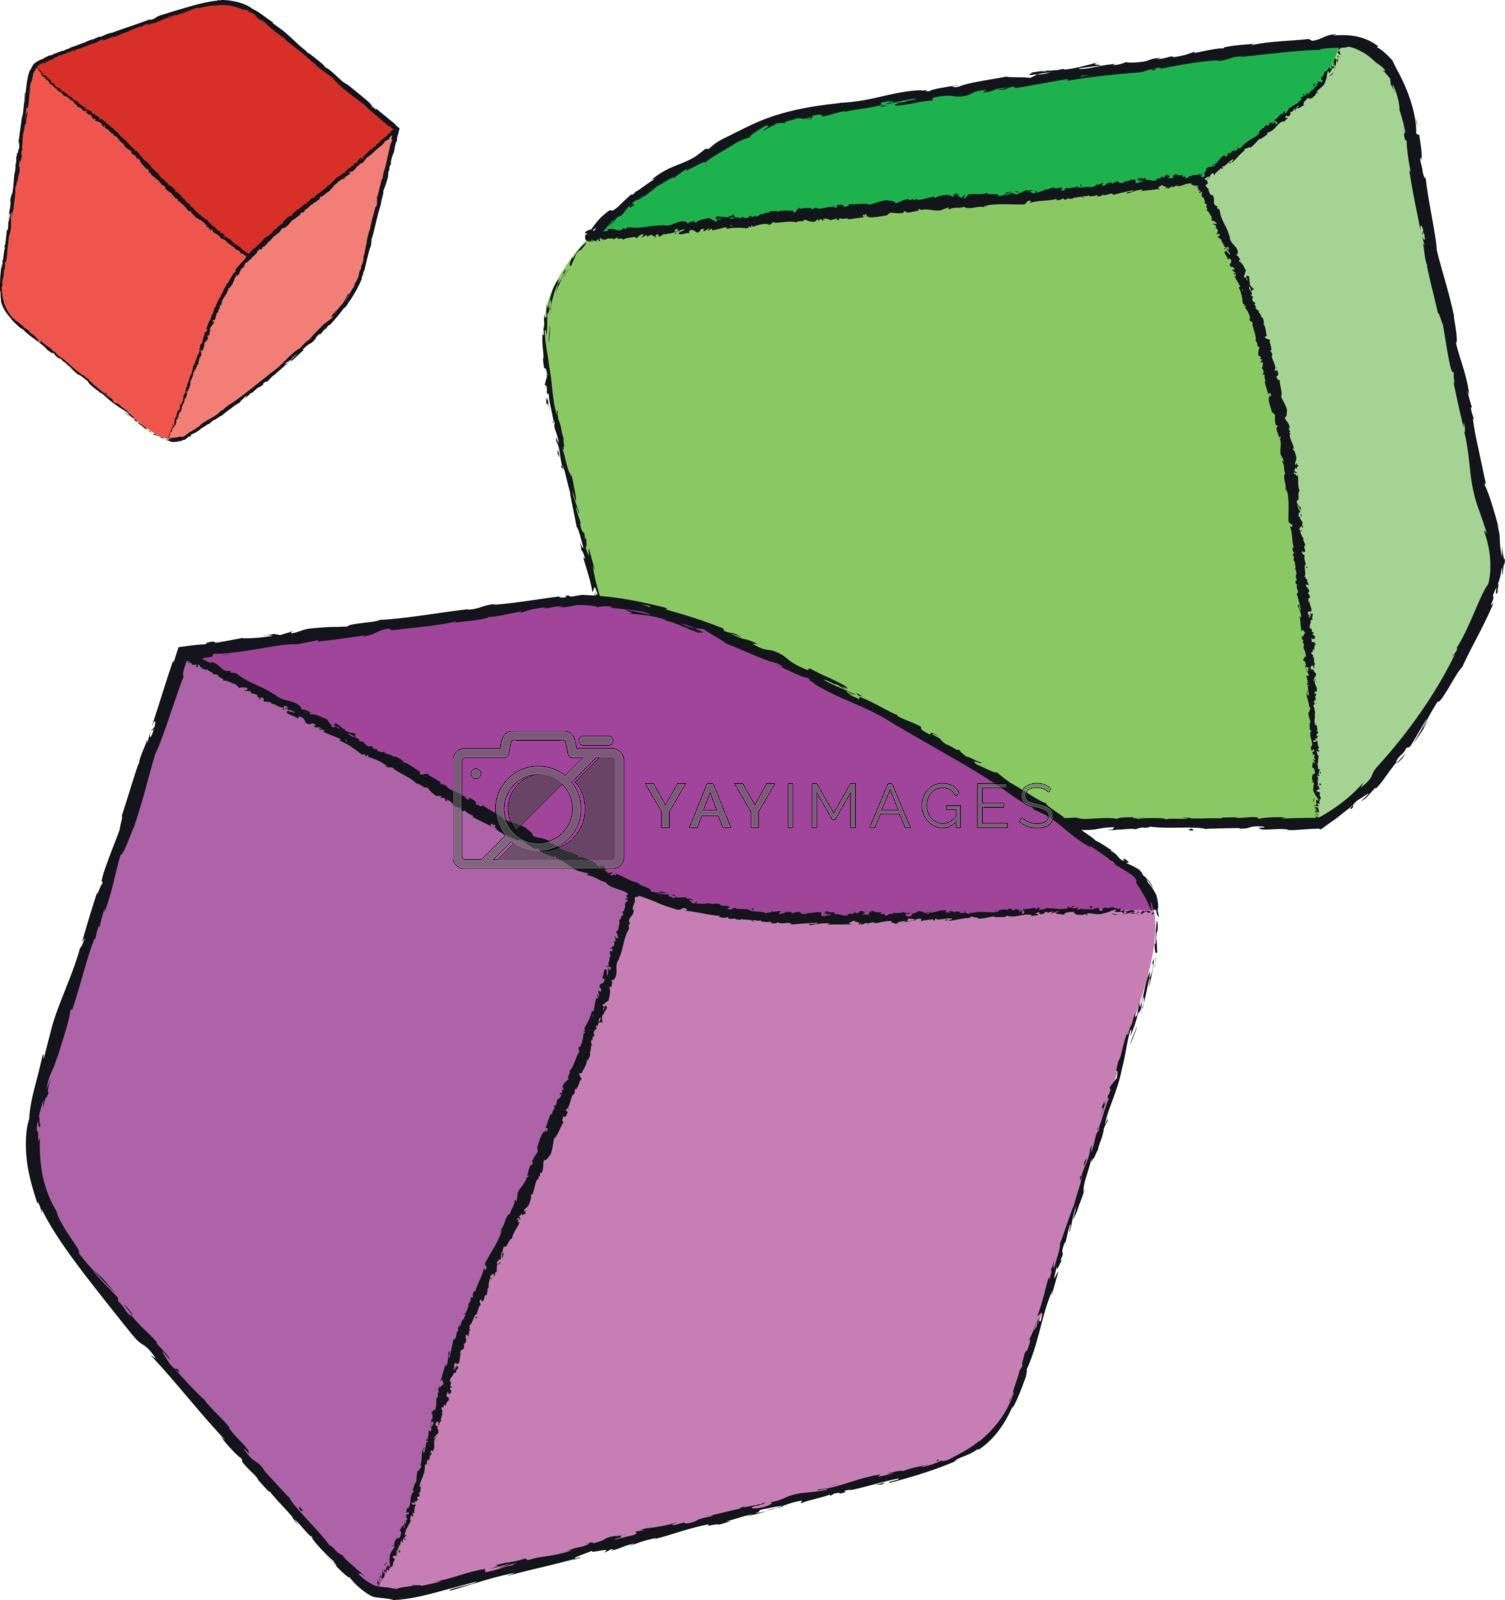 Colored hand drawn rolling and bouncing children toys cubes without letters isolated on white background. Vector illustration